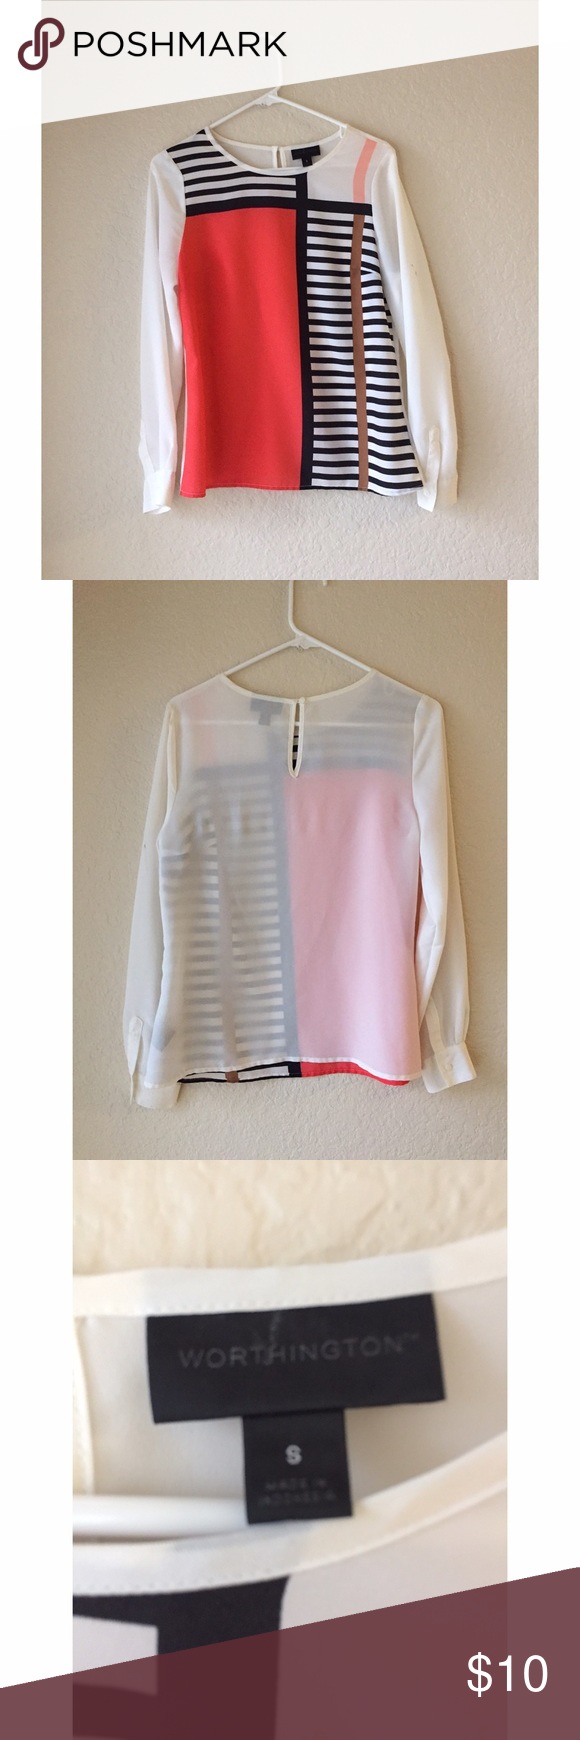 💼 Worthington Striped Color Block Blouse This is a silky-feeling blouse from Worthington, size S. Excellent for the workplace! Has a black stain on the left sleeve (see picture 4), but it might come out with some stain remover and a little hard work! Worthington Tops Blouses